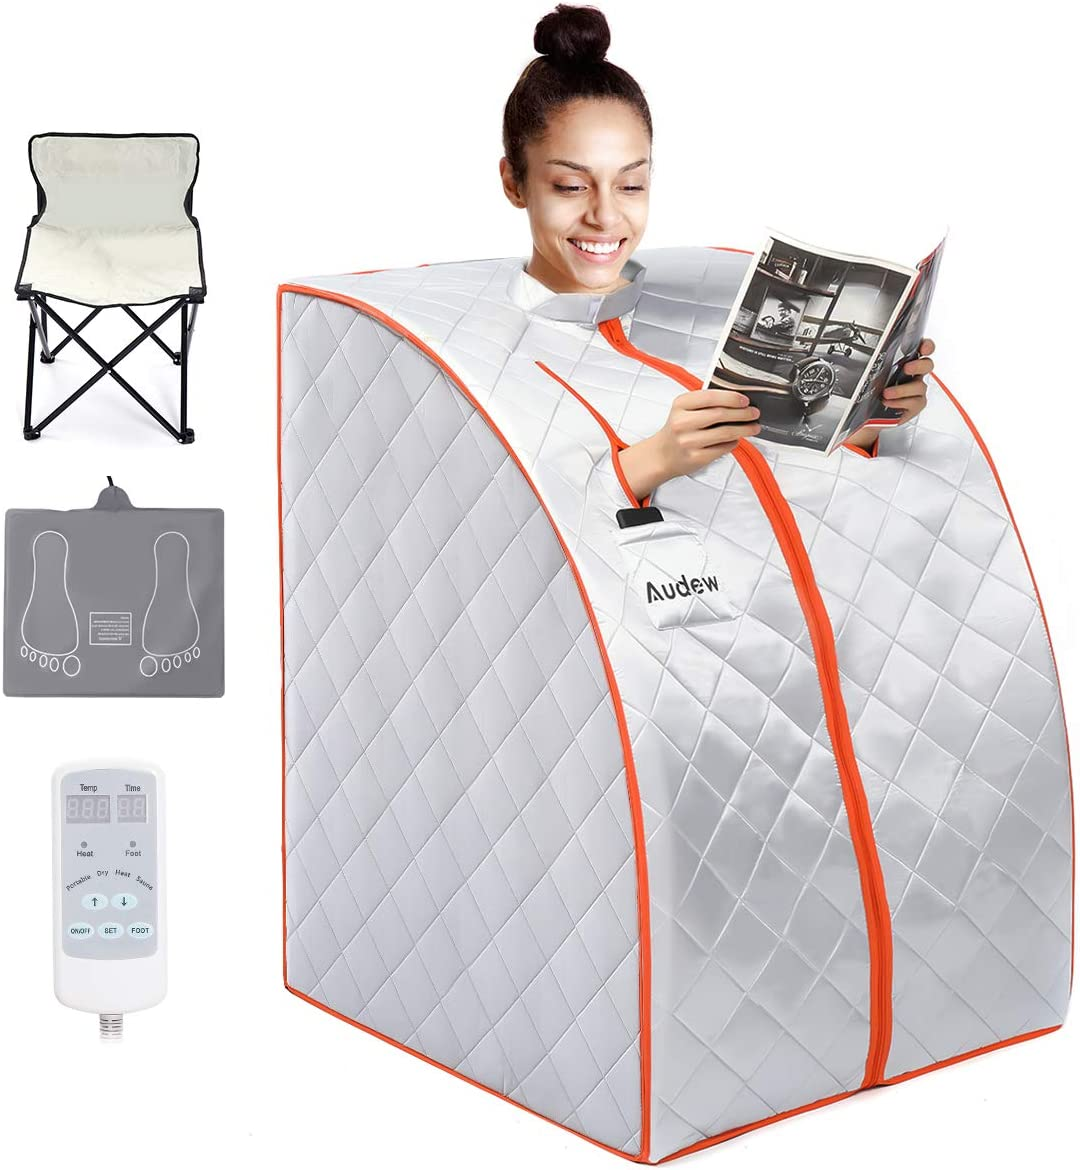 Audew Infrared Sauna Portable Infrared Home Spa, One Person Sauna, Portable Steam Sauna Foldable Sauna Blanket with Carbon Fiber Heating Plate, Fire Cotton, Foot Pad, Foldable Chair, Remote Control